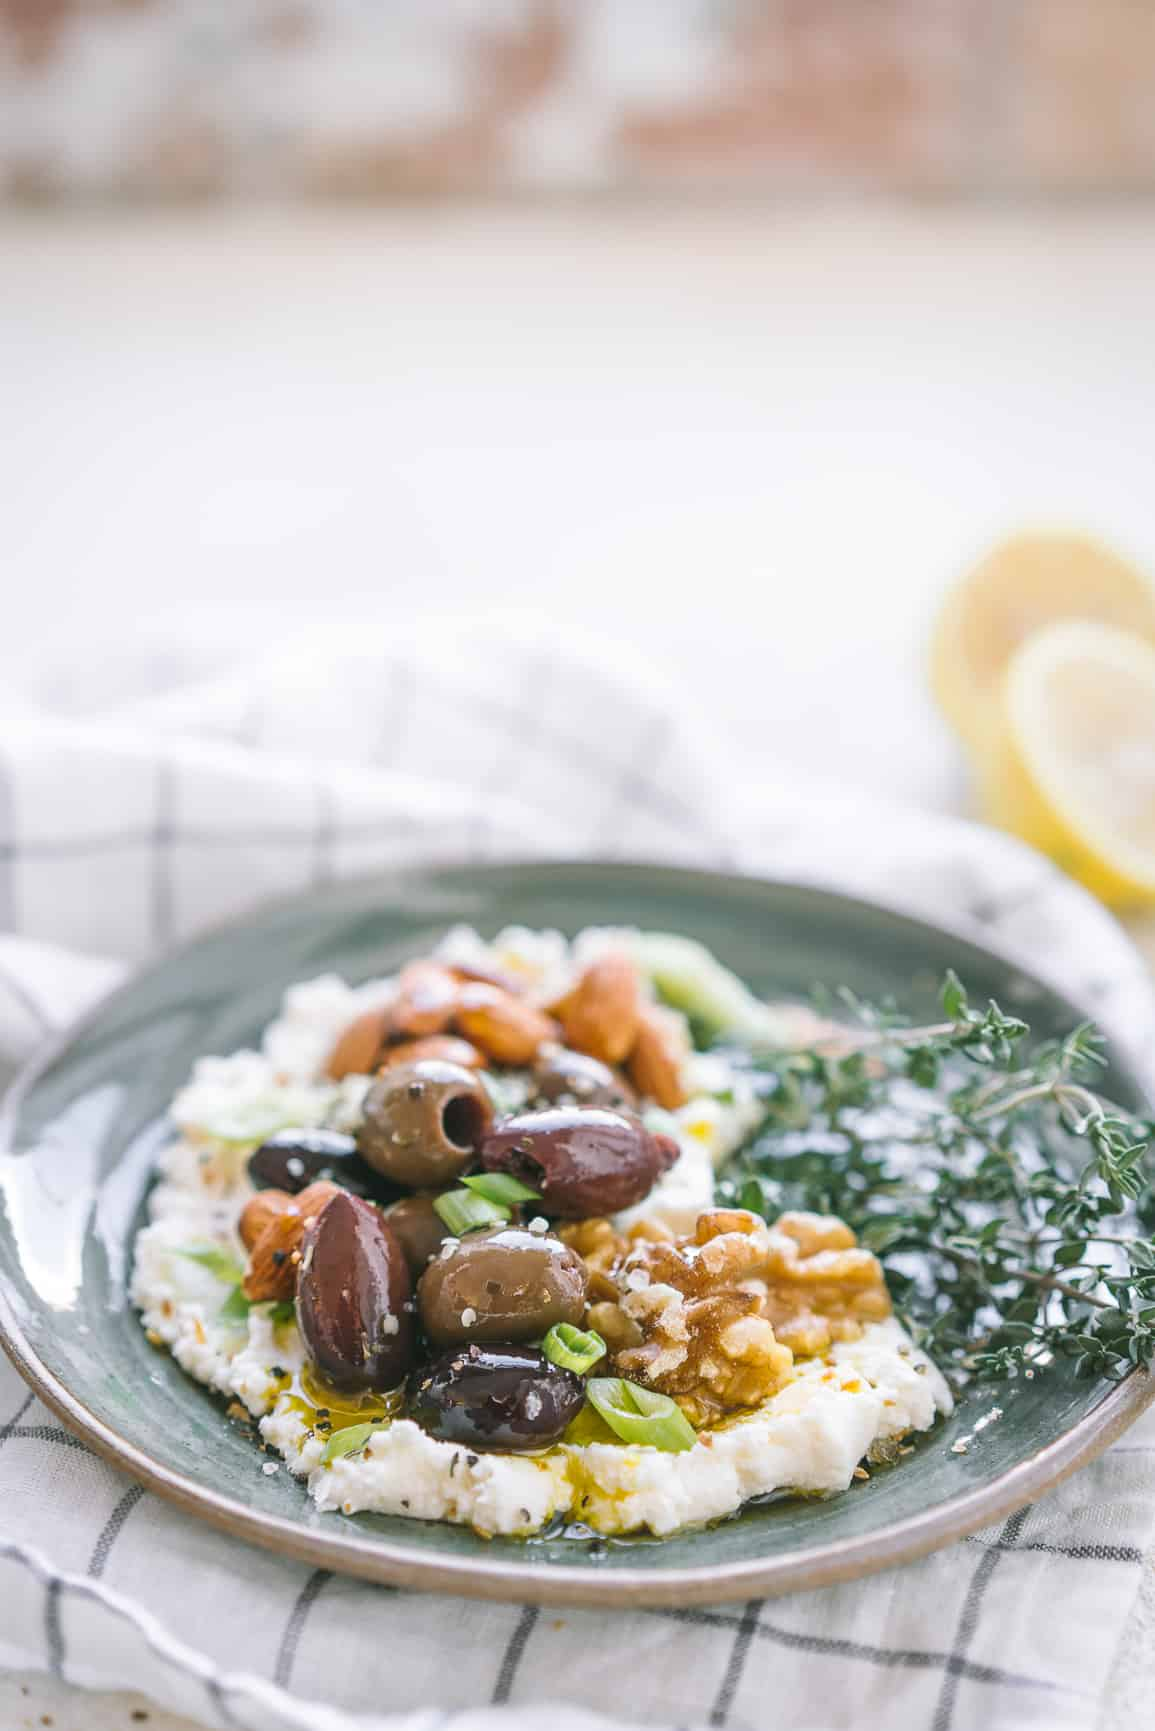 Savory Ricotta Olive Nut Bowl {Low-Carb & Keto}